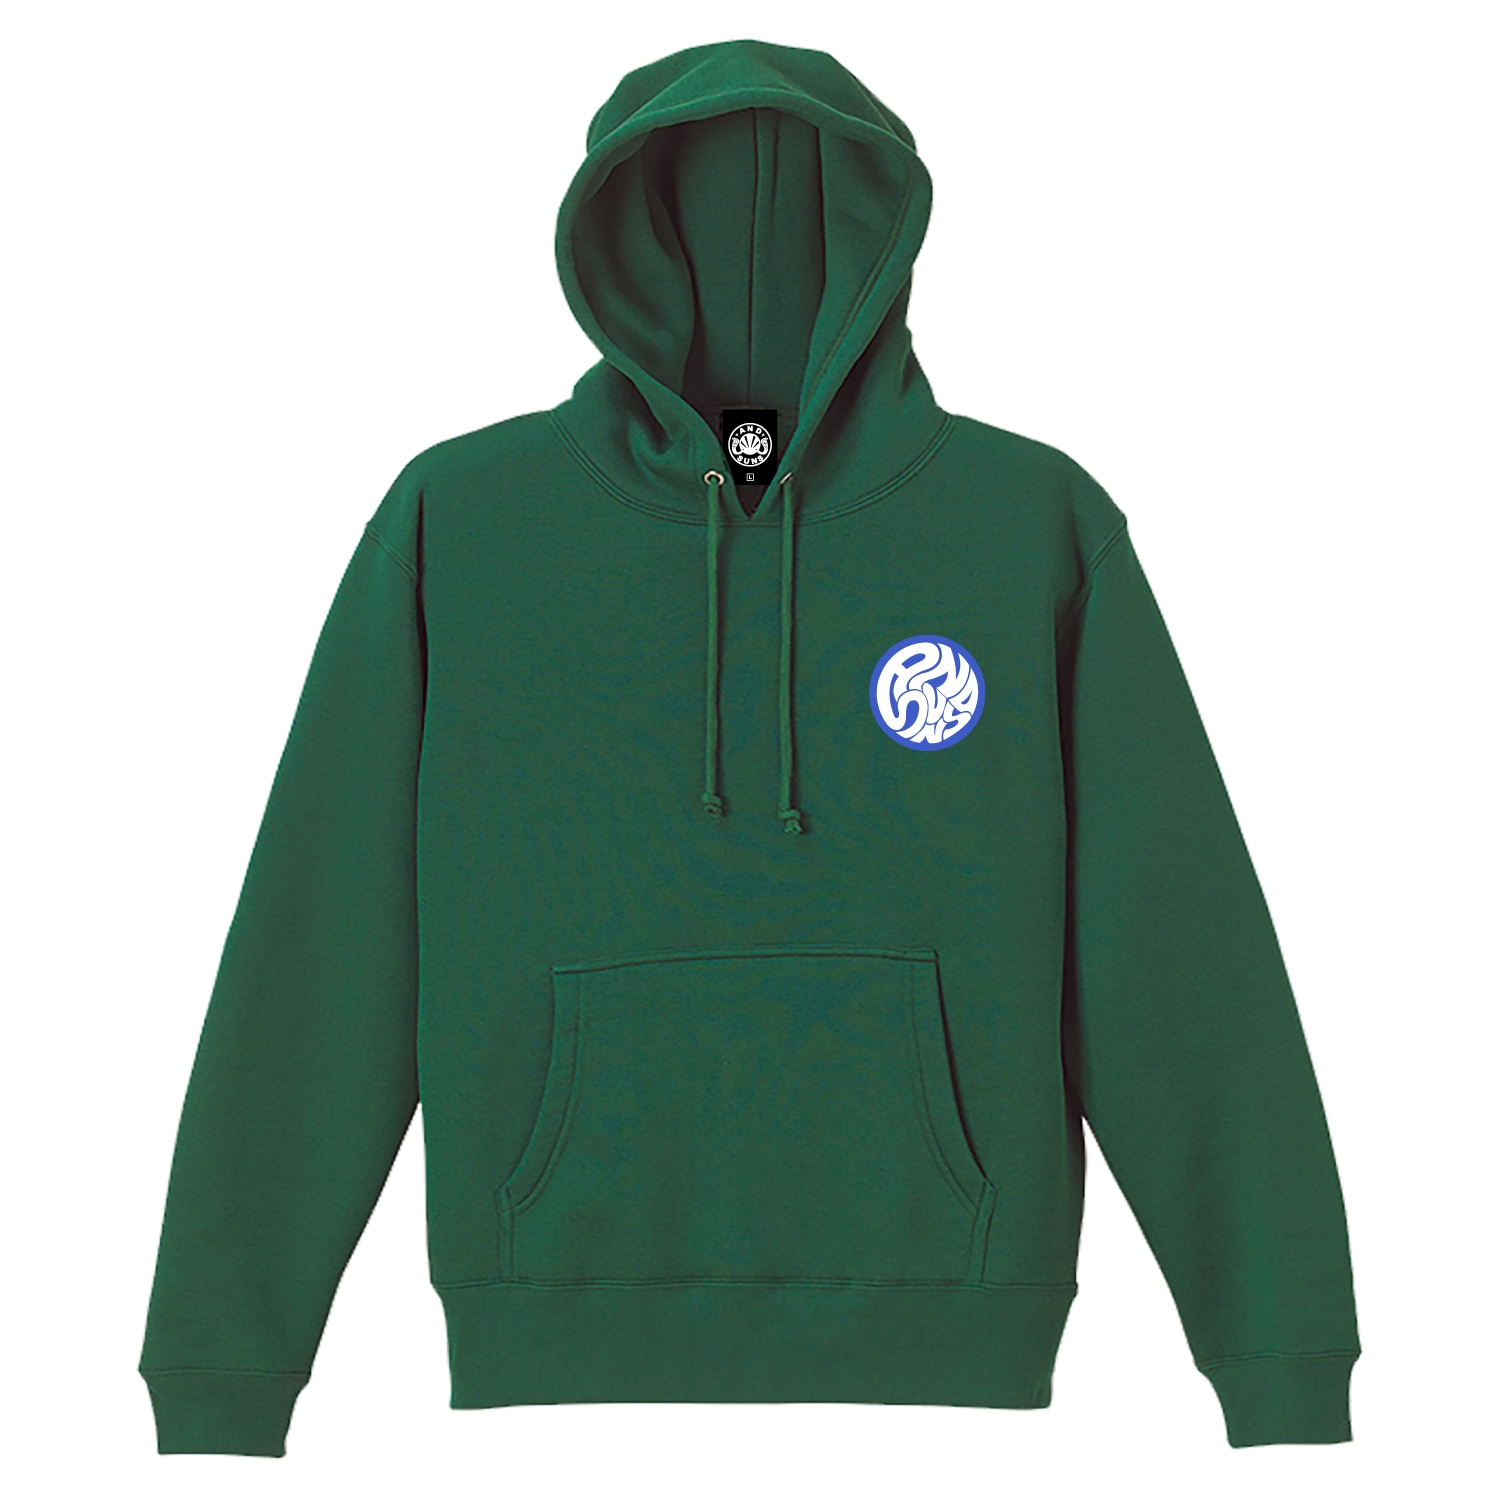 SWIRLING SUNS PULLOVER (GREEN)